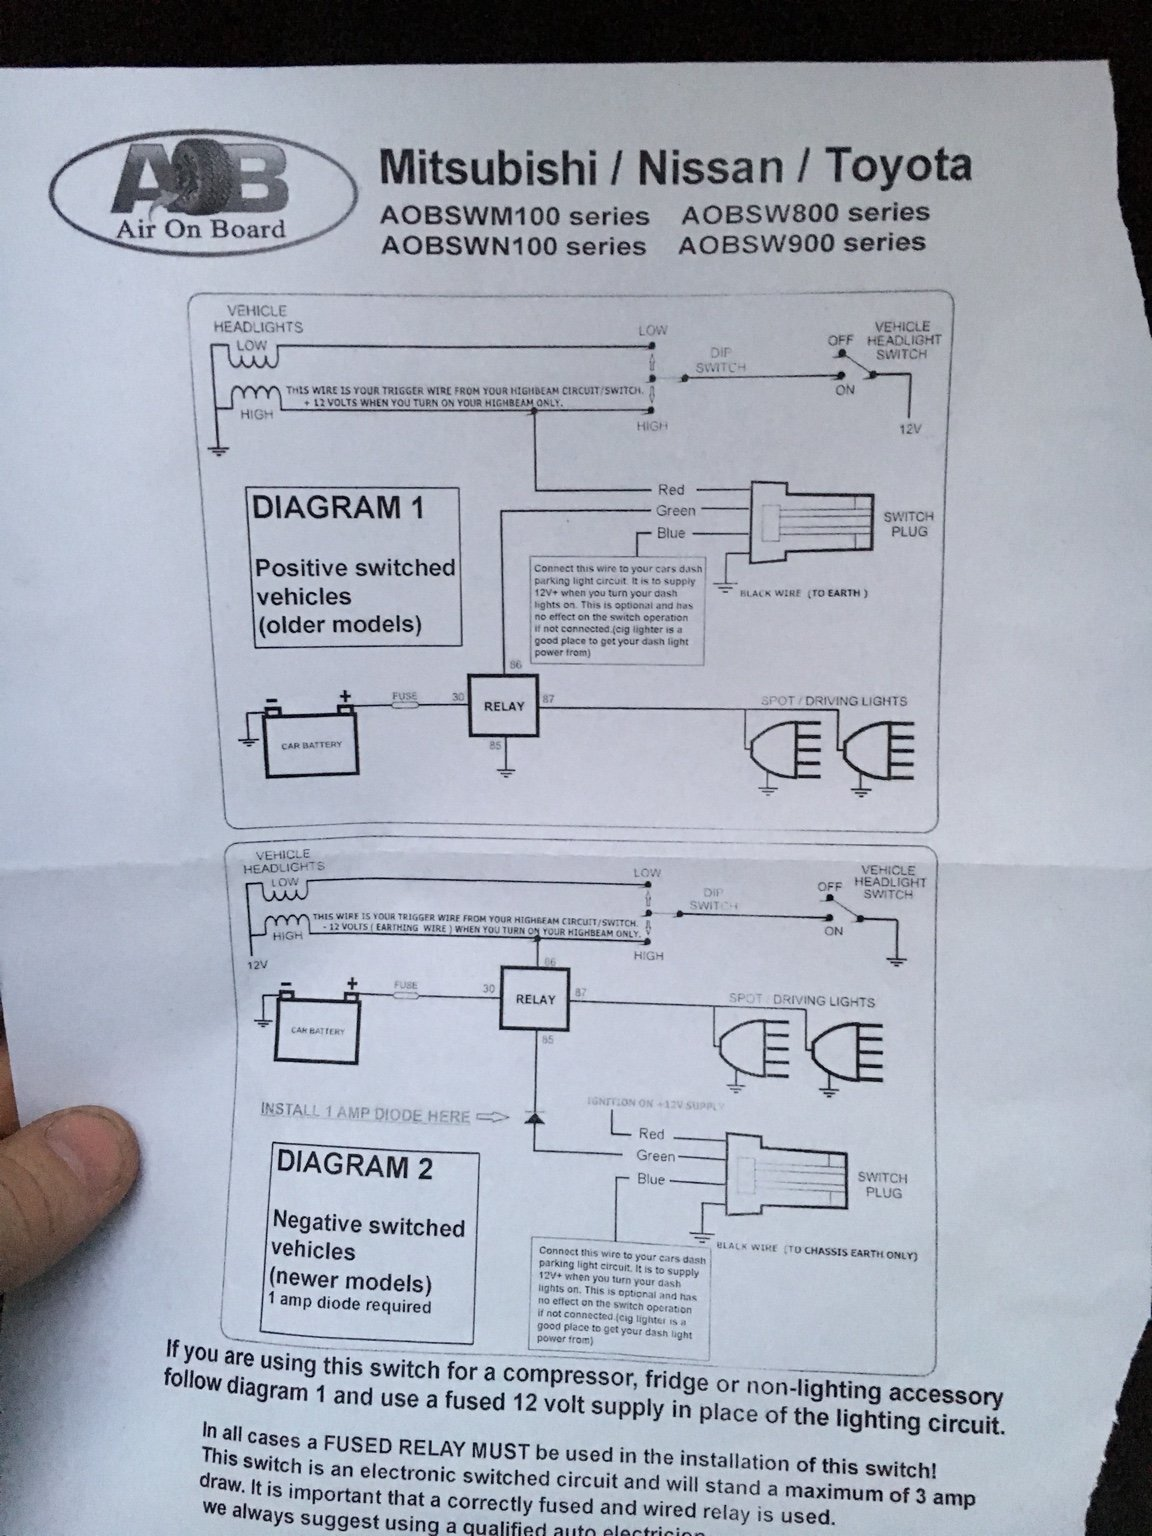 Consolidated Lighting Info Thread Page 9 Toyota 4runner Forum Rigid Wiring Diagram How Do I Wire My Light Bar To This Aob Switch Says Need A Diode Any Help Appreciated